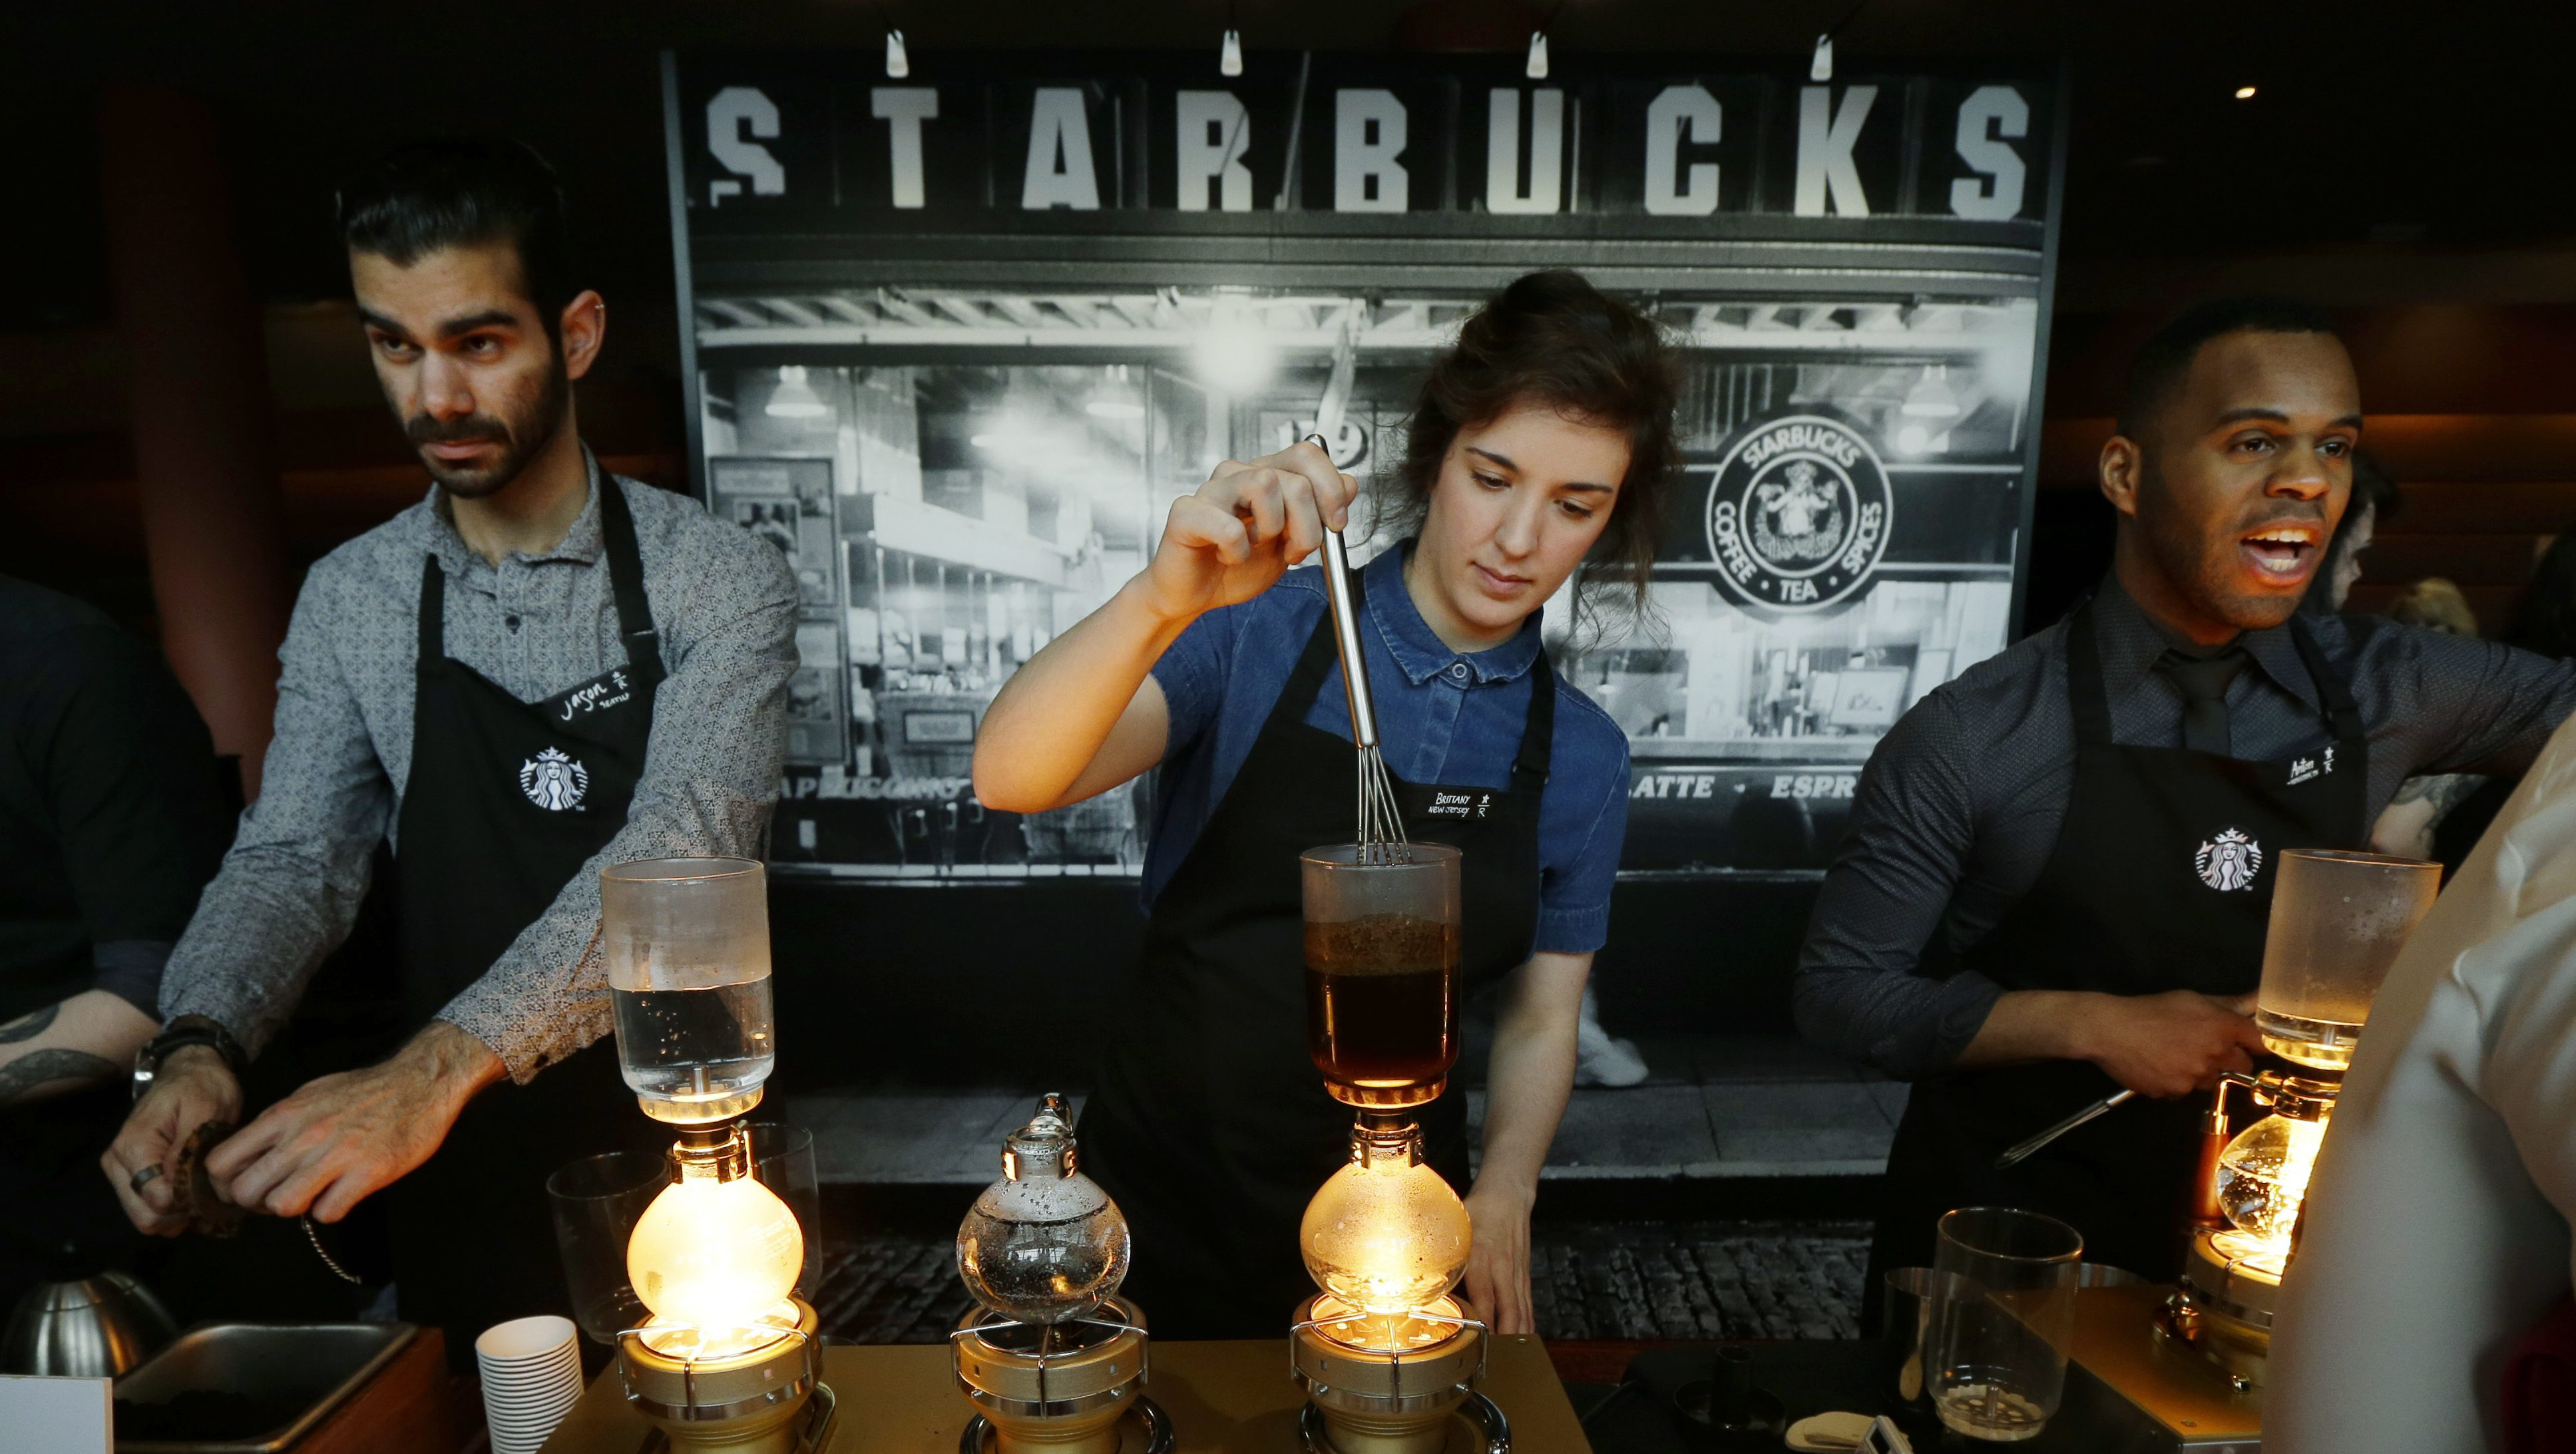 Starbucks workers prepare coffee using siphon vacuum coffee makers at a station in the lobby of the coffee company's annual shareholders meeting in Seattle.